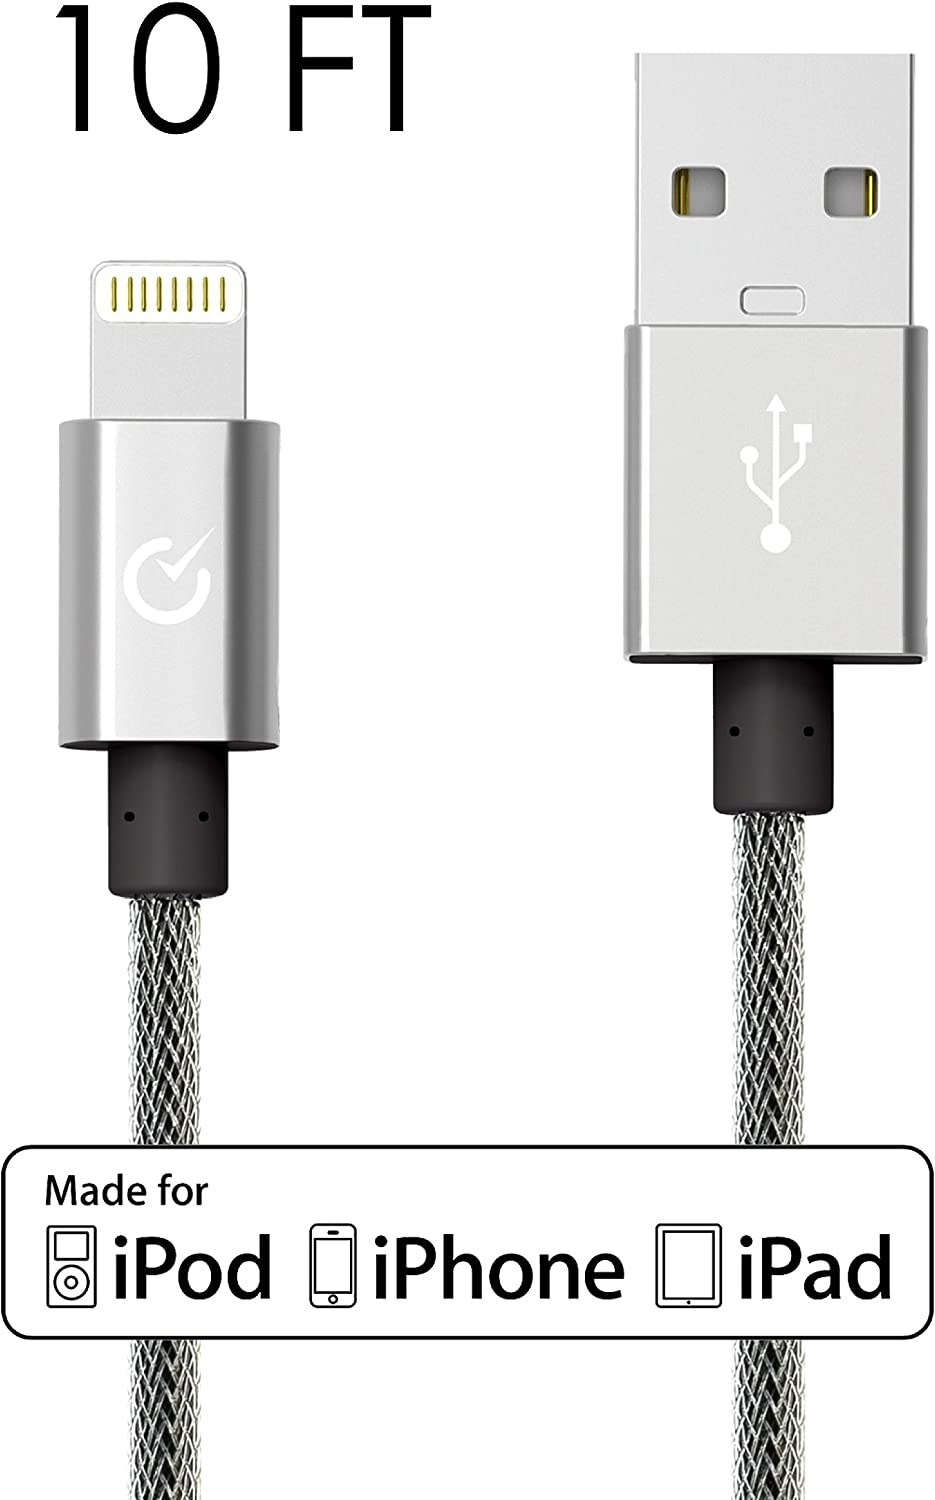 Volts Lightning Cable 10ft USB [Apple MFi Certified] Exo Nylon Braided Lightning Charger w/Aluminum Case on USB & 8-pin Connector for Apple iPhone 6/6 Plus, iPod, iPad & More (Exo Silver 10FT)